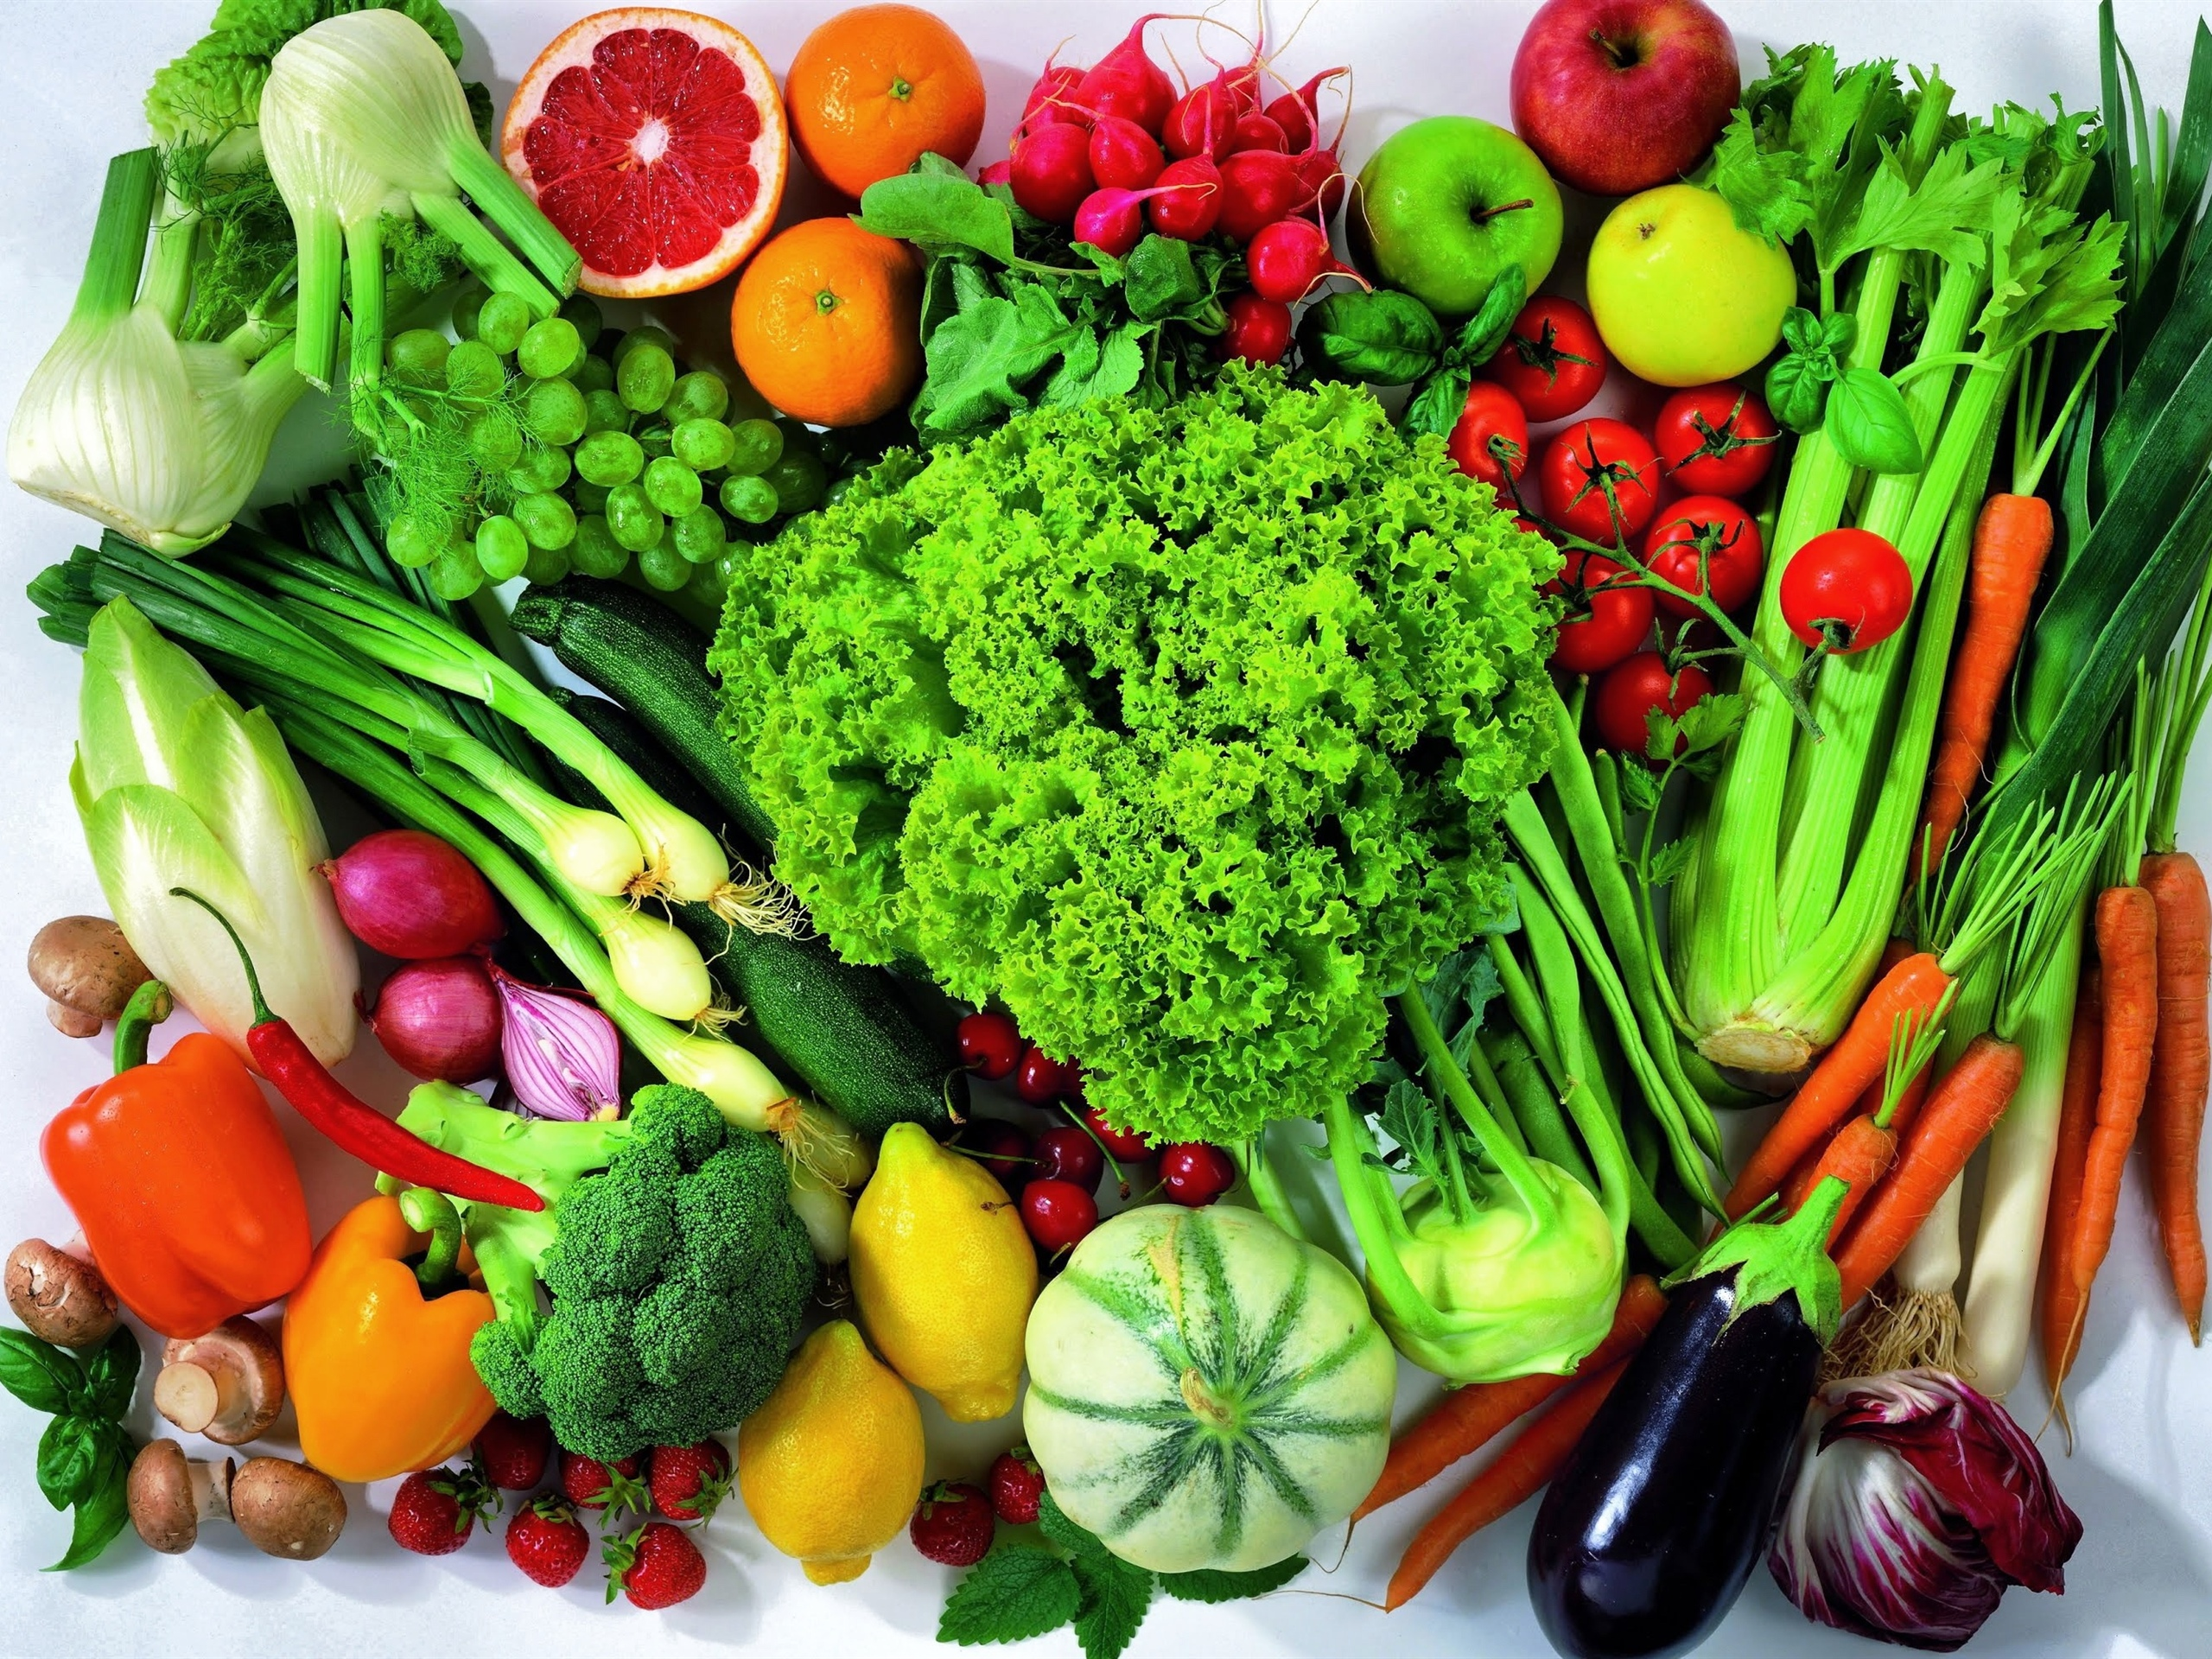 Many kinds of vegetables and fruits 2560x1920 wallpaper